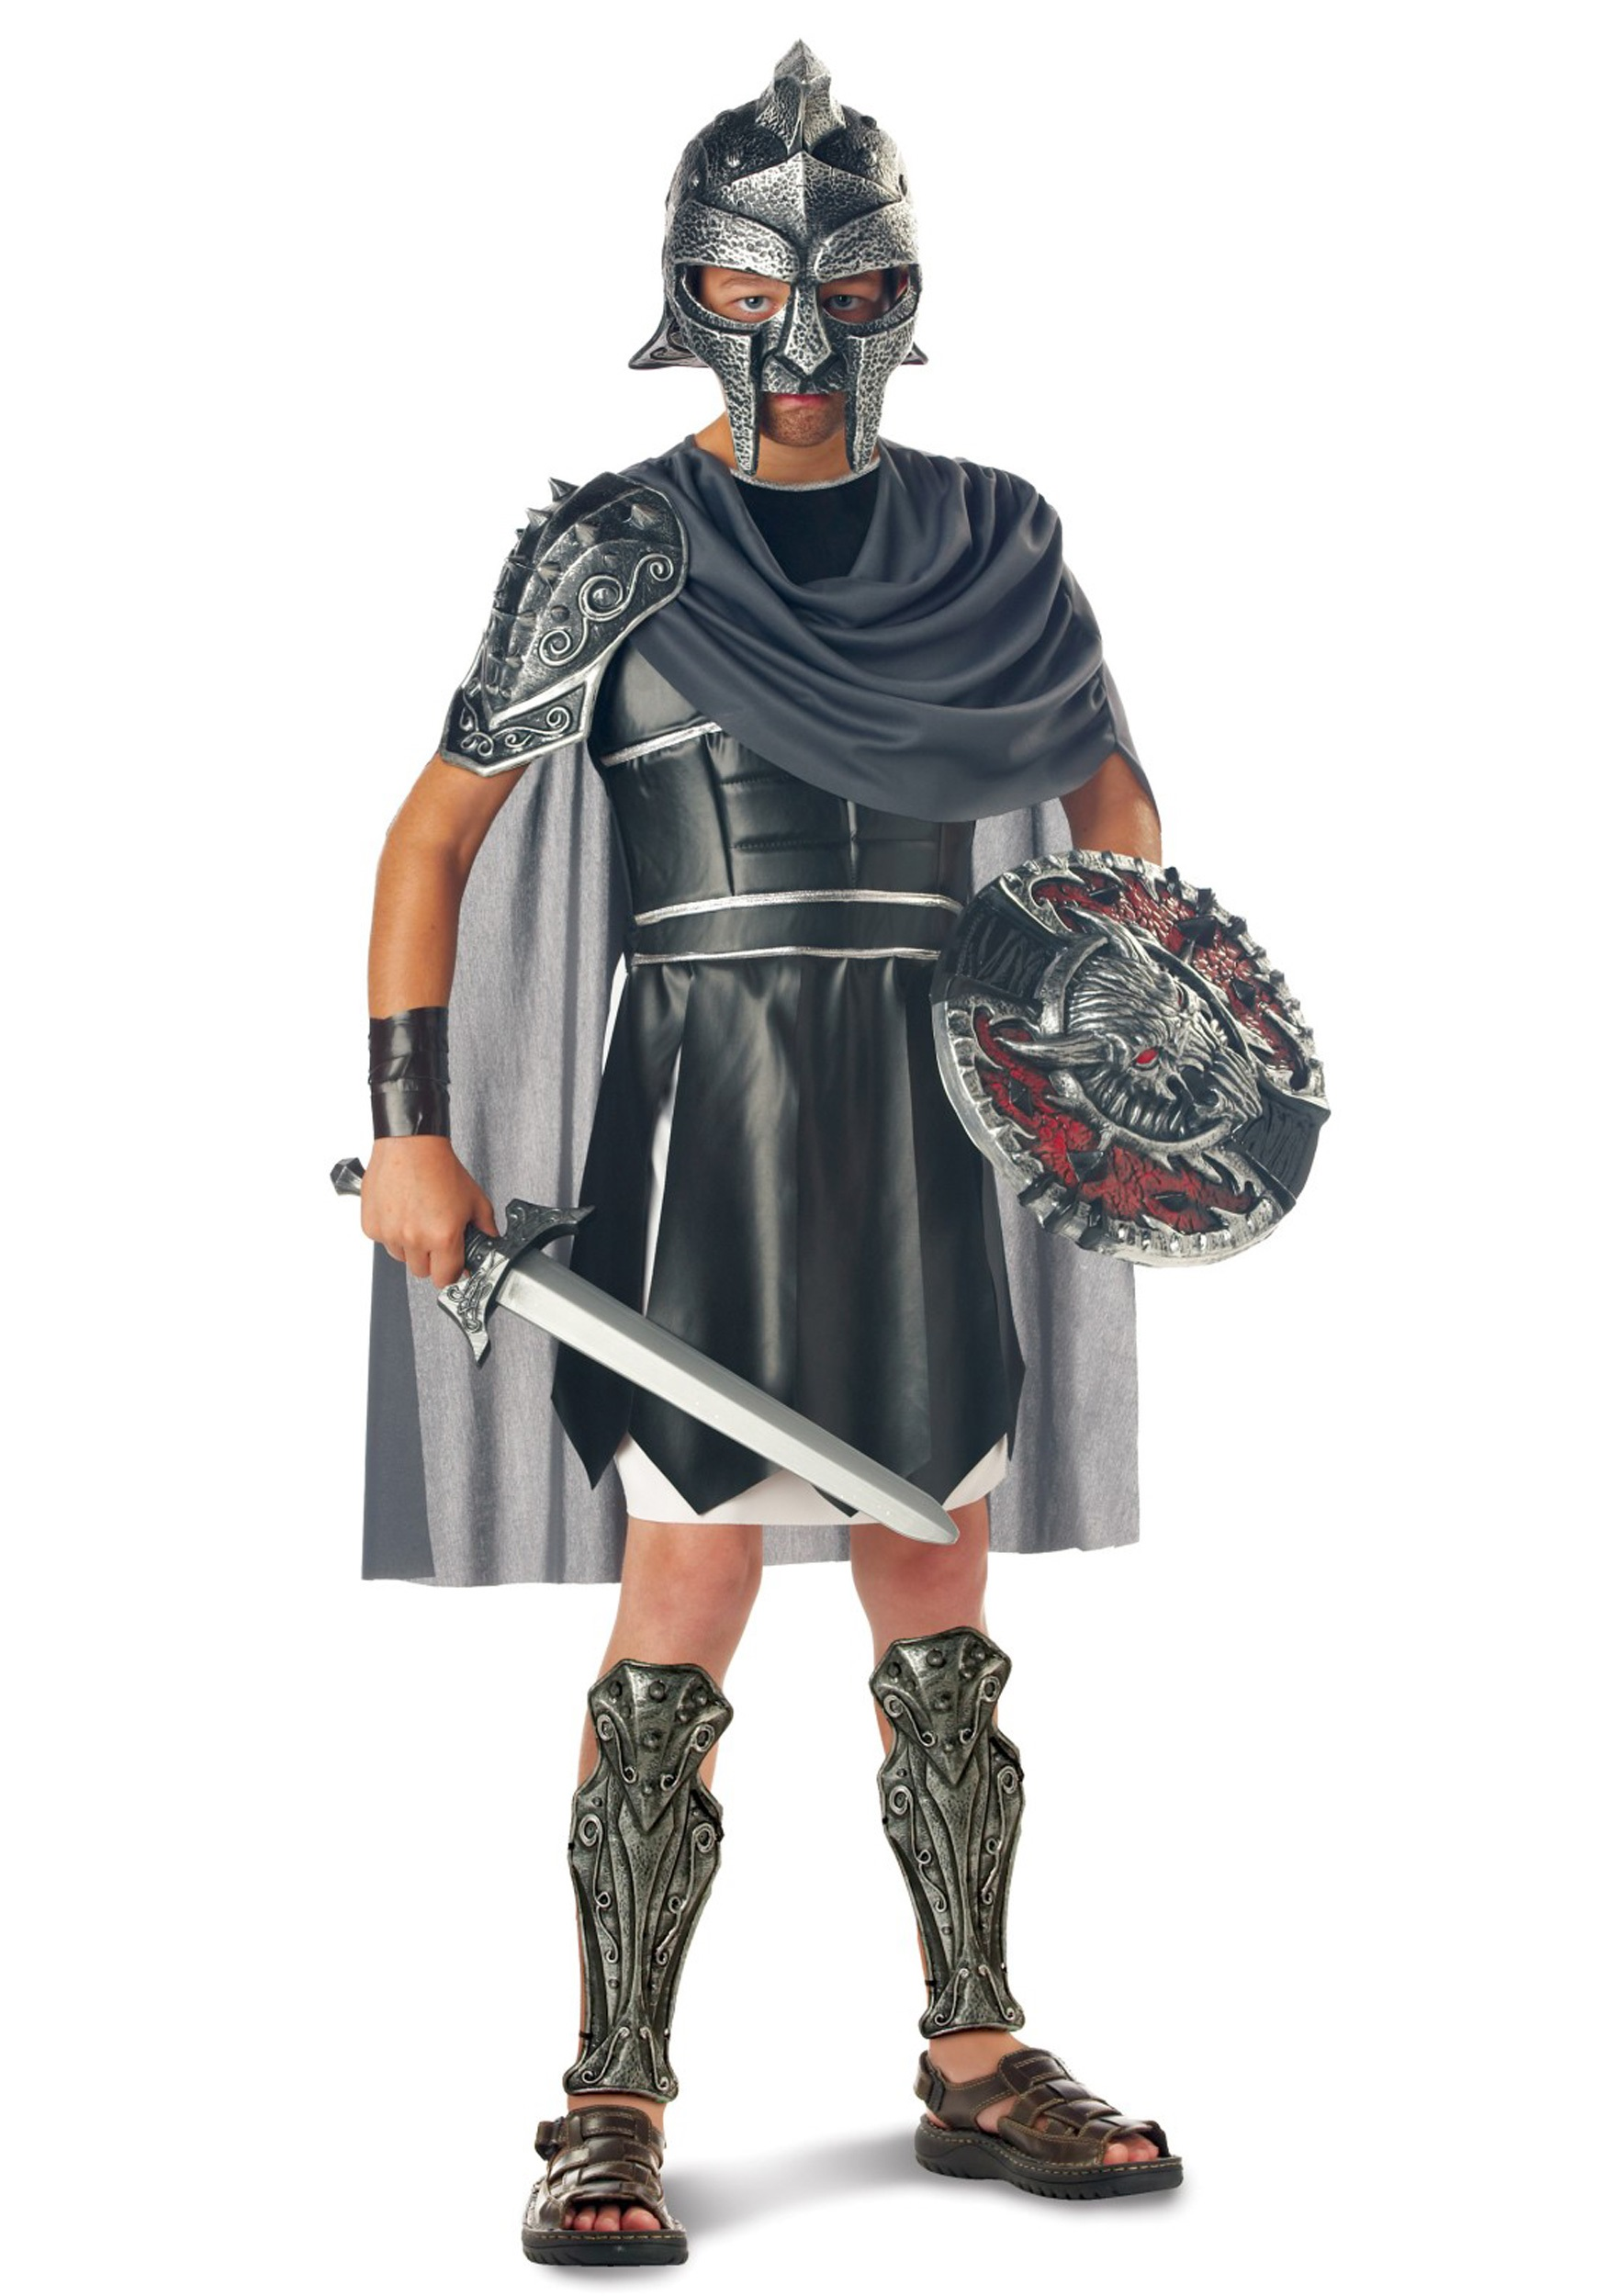 Child Gladiator Costume  sc 1 st  Halloween Costume & Child Gladiator Costume - Kids Roman Warrior Costumes for Halloween